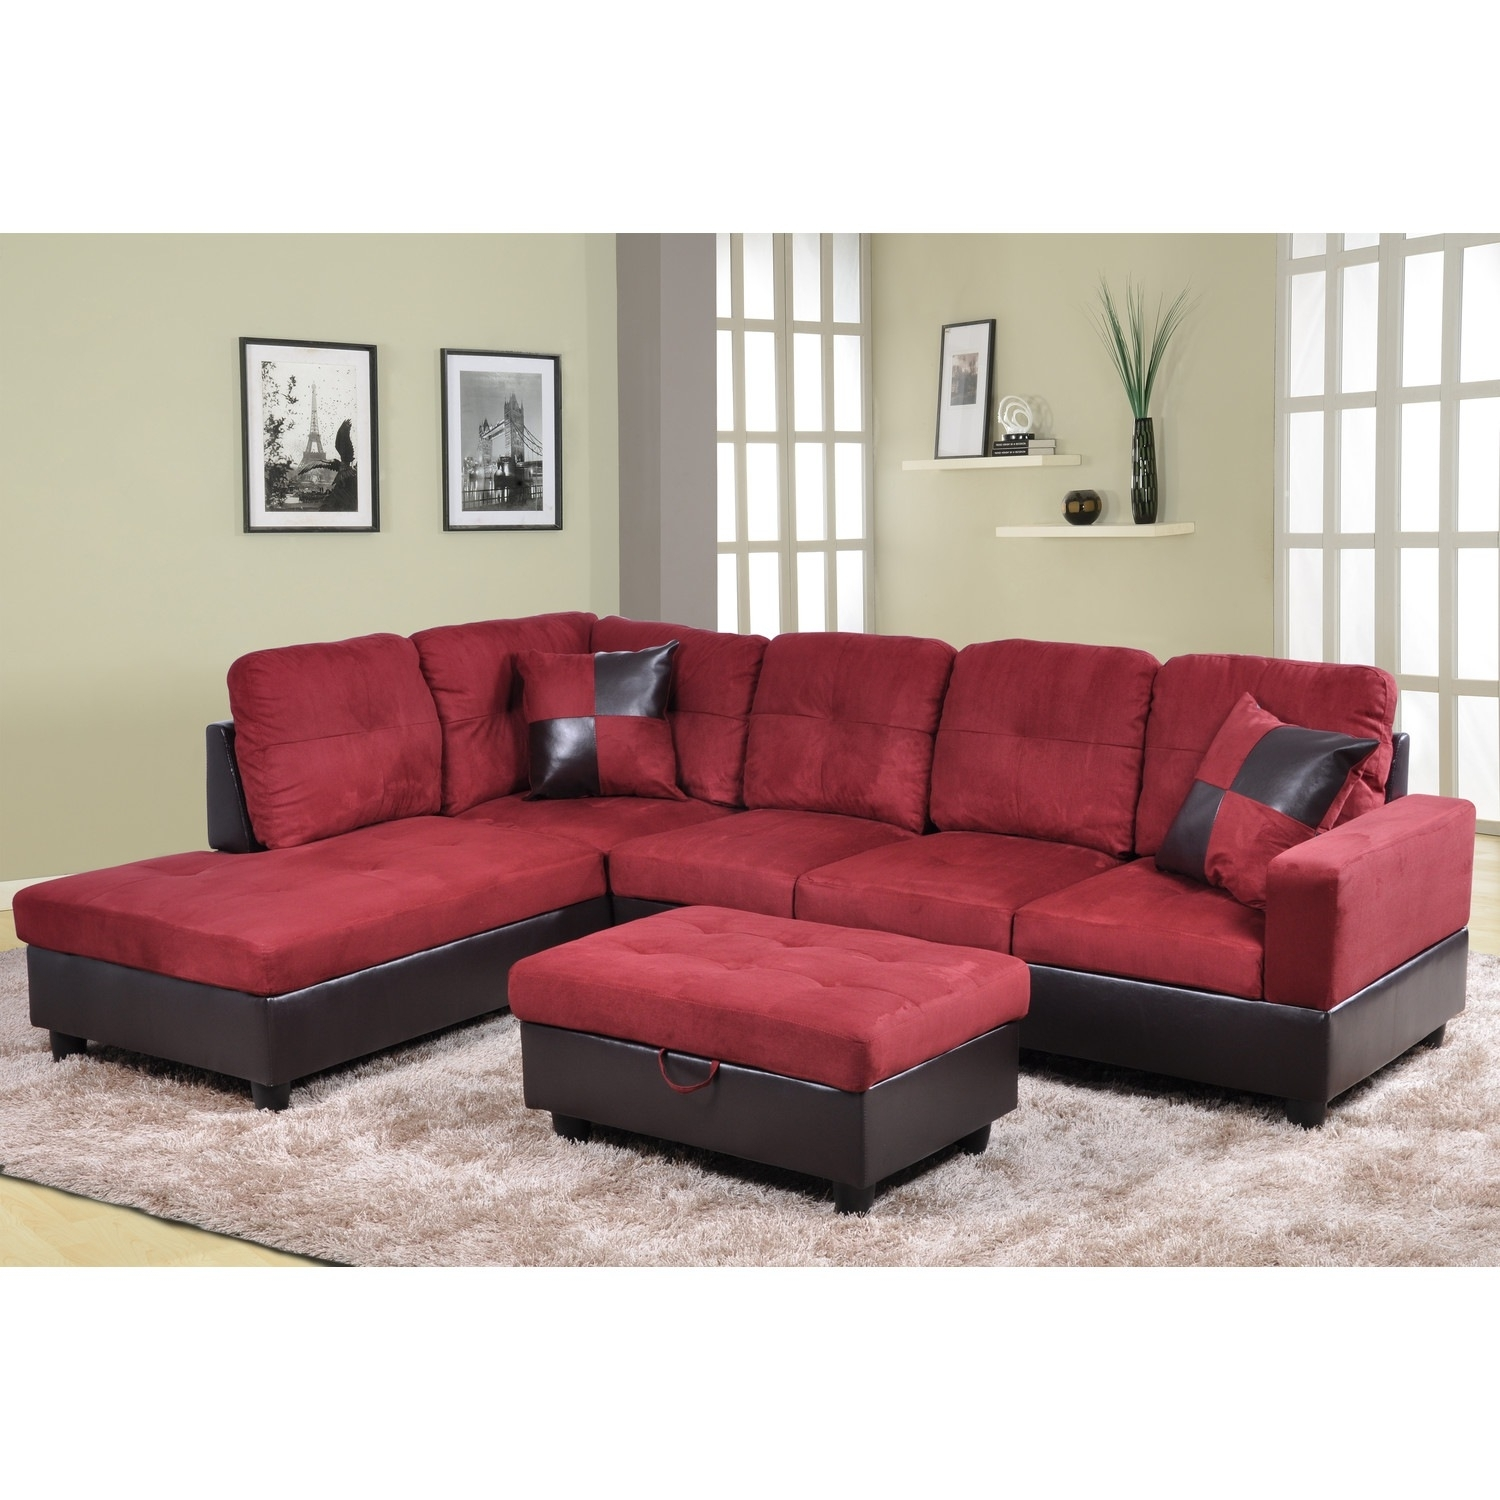 Cheap Sectional Sofas For Sale Inspirational Furniture Sears Sofa in Sectional Sofas at Sears (Image 2 of 15)